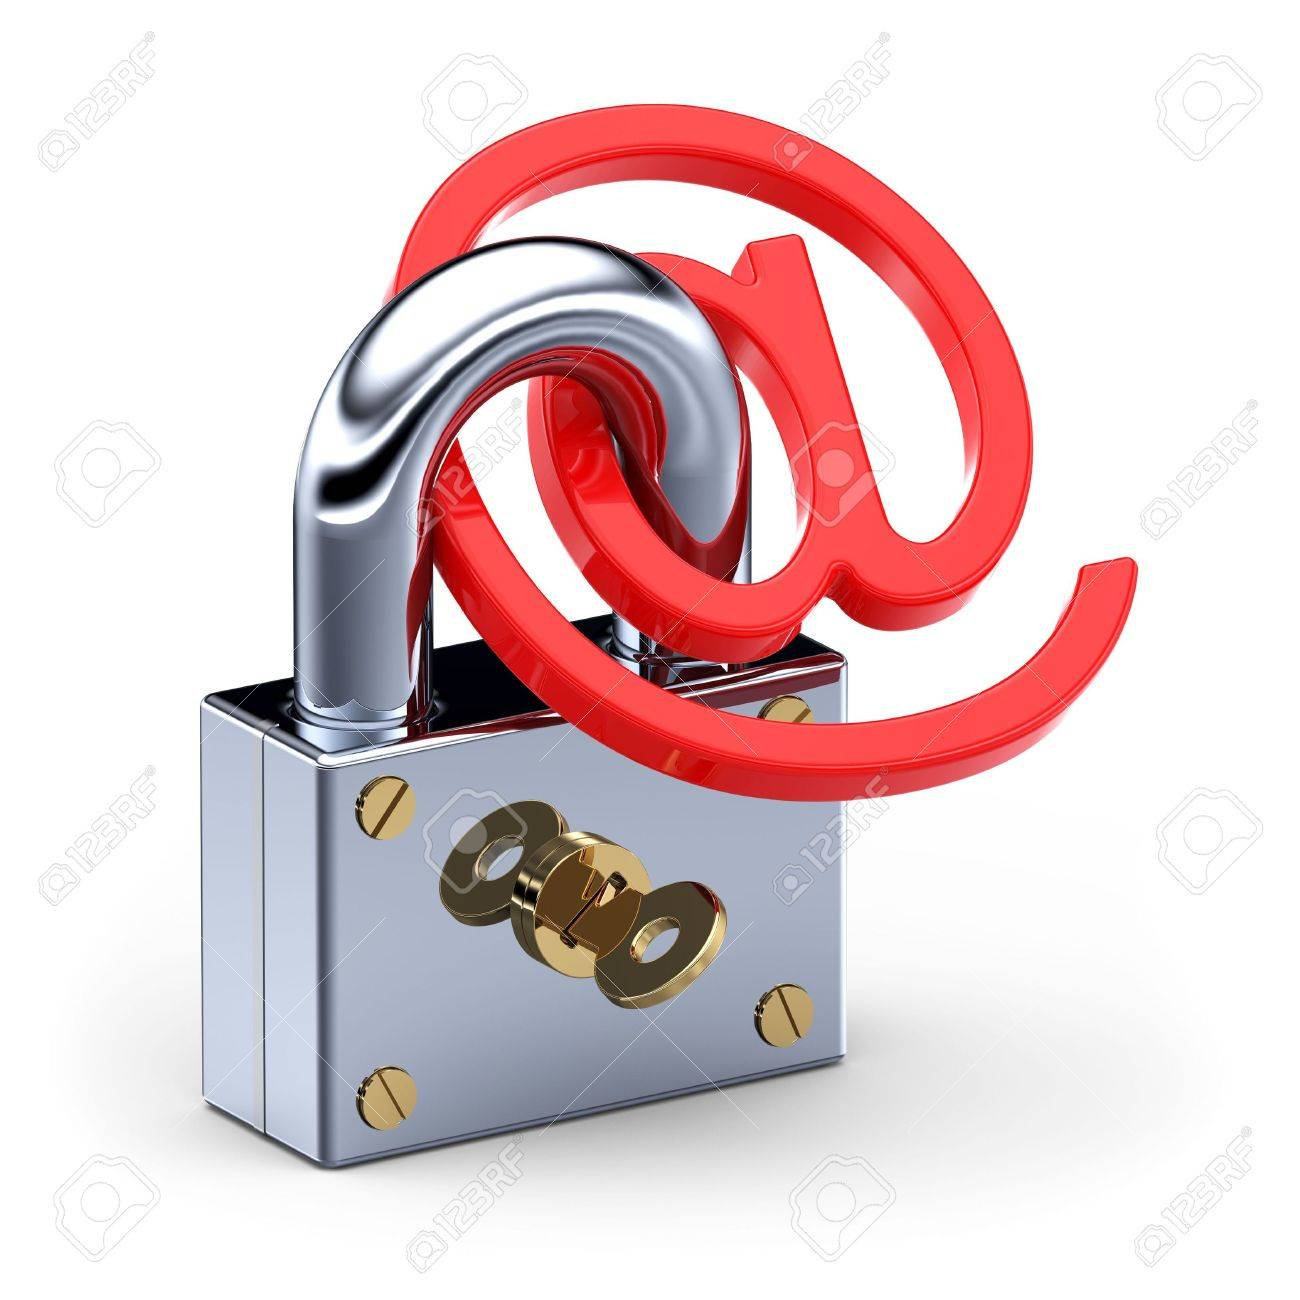 E-mail and padlock Stock Photo - 7945661